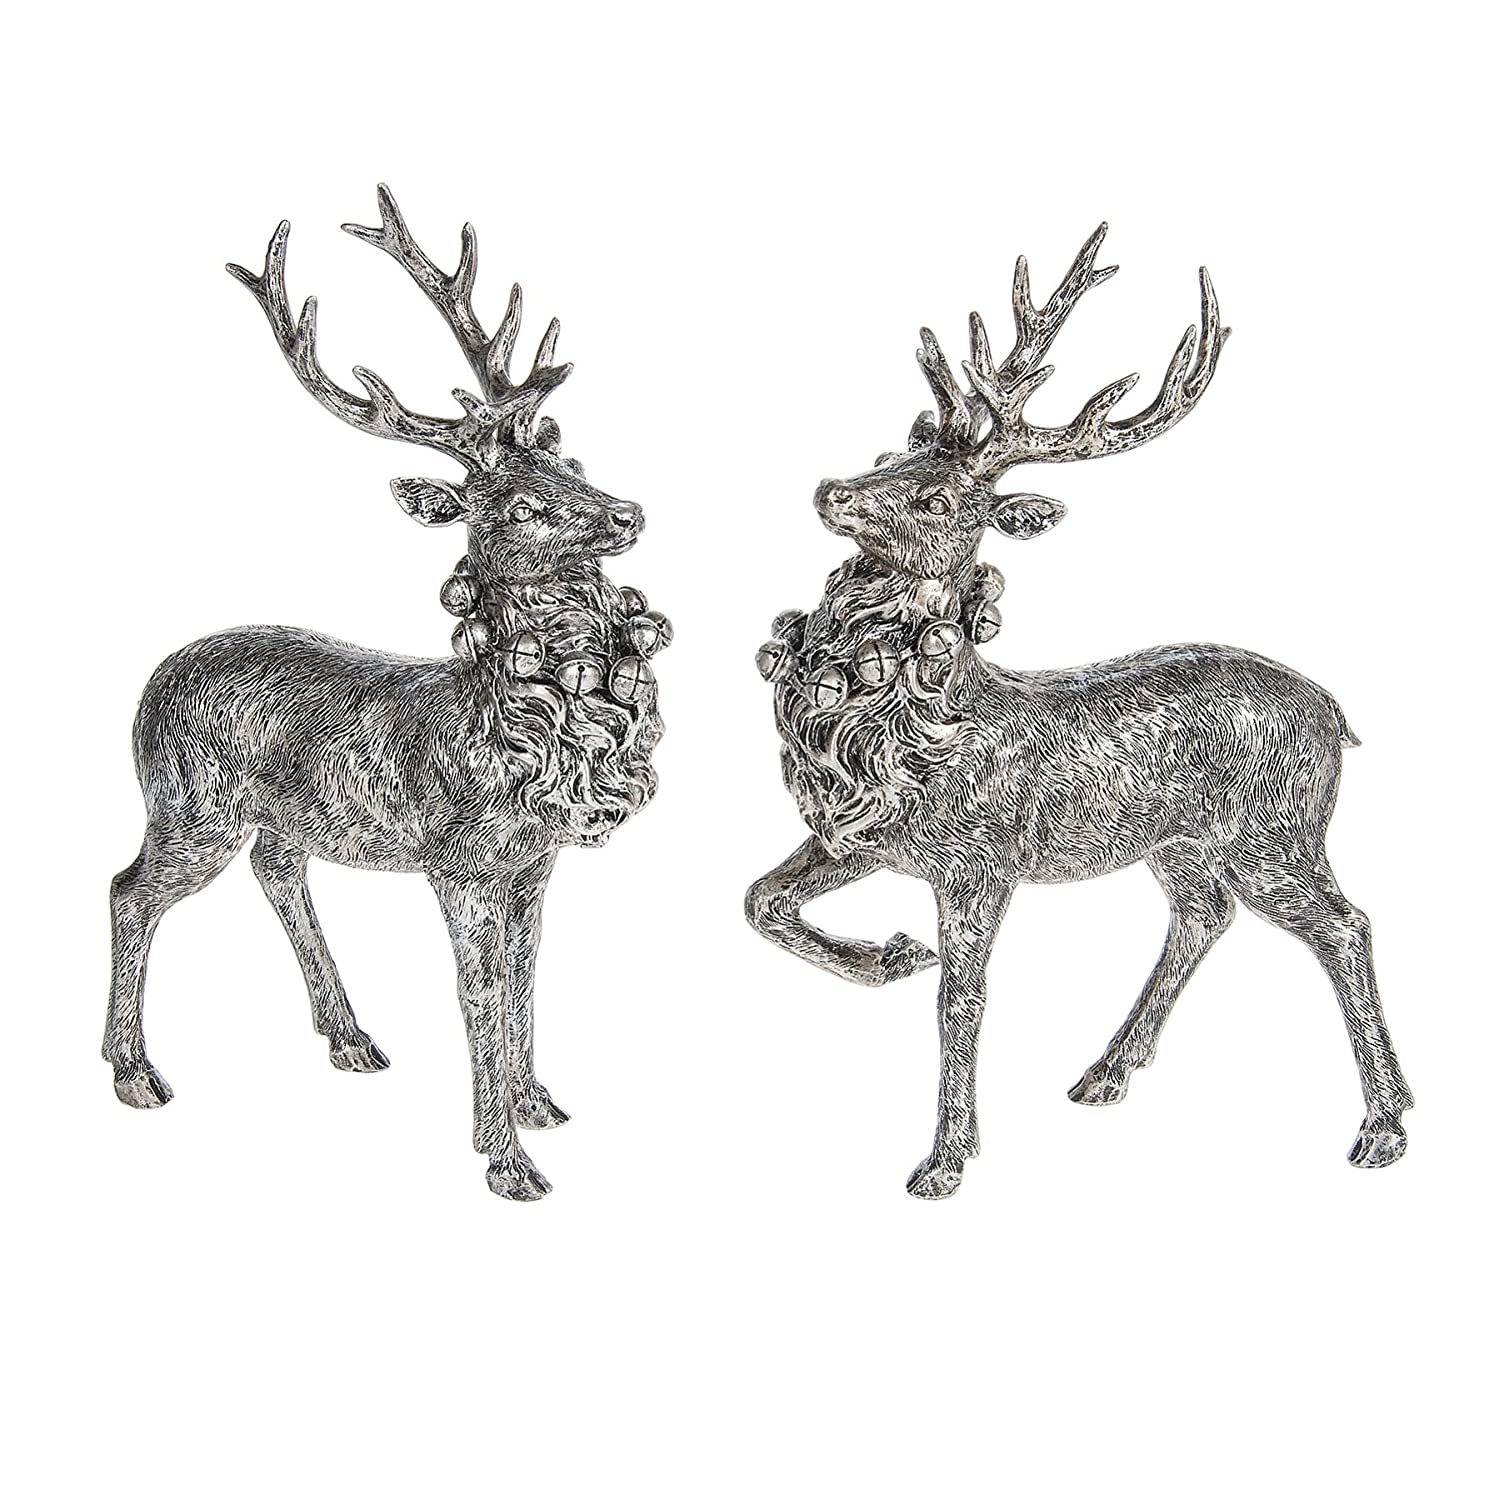 Antique Silvertone Standing Christmas Stag Figurine Pair | ChristmasTablescapeDecor.com